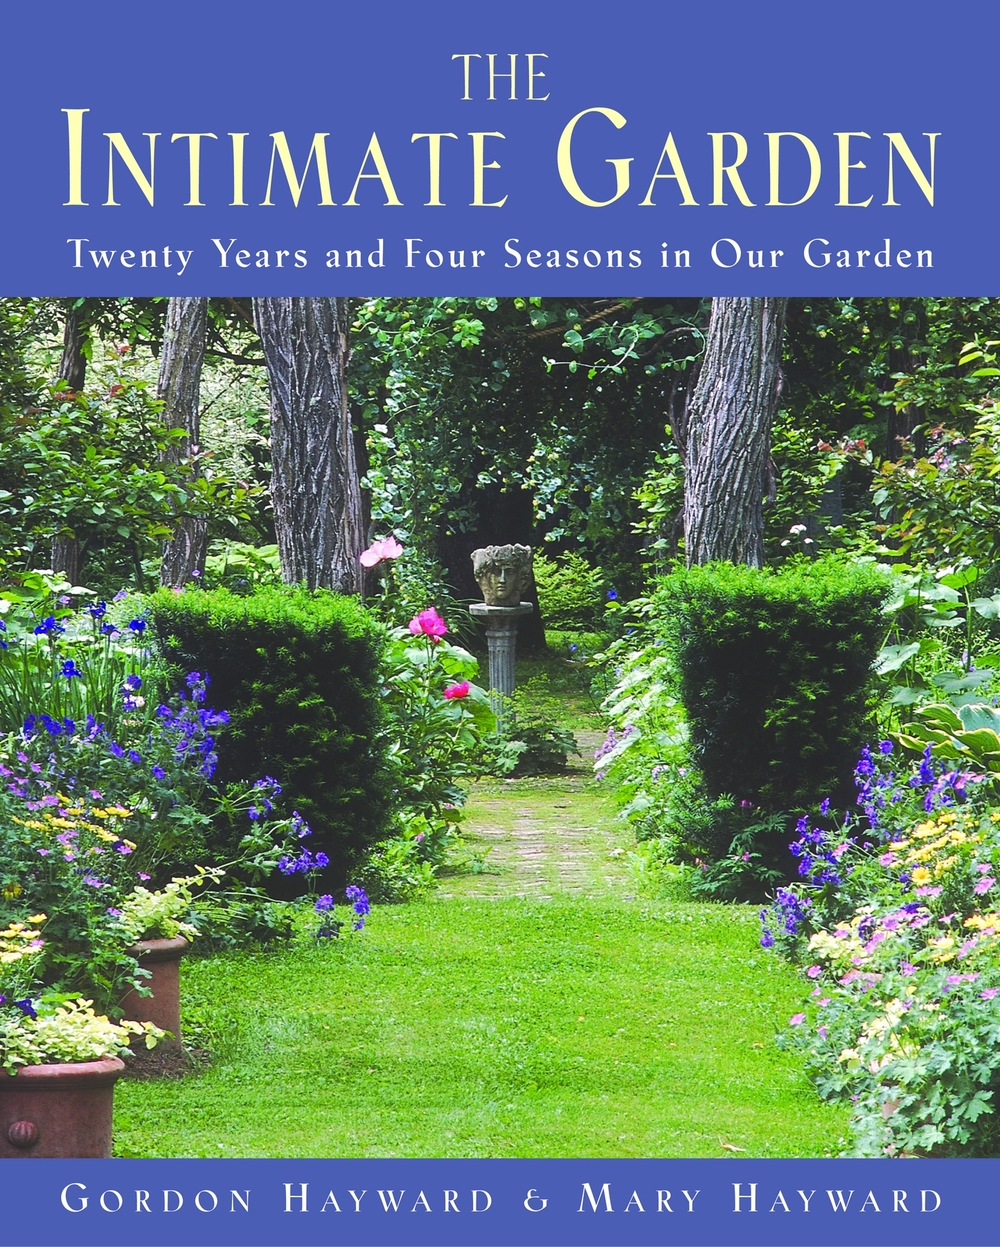 Books: I Love My Gardening Books, Some That I Have Had For Many Years And  Still Refer Back To. And There Are Always New Publications To Enjoy.